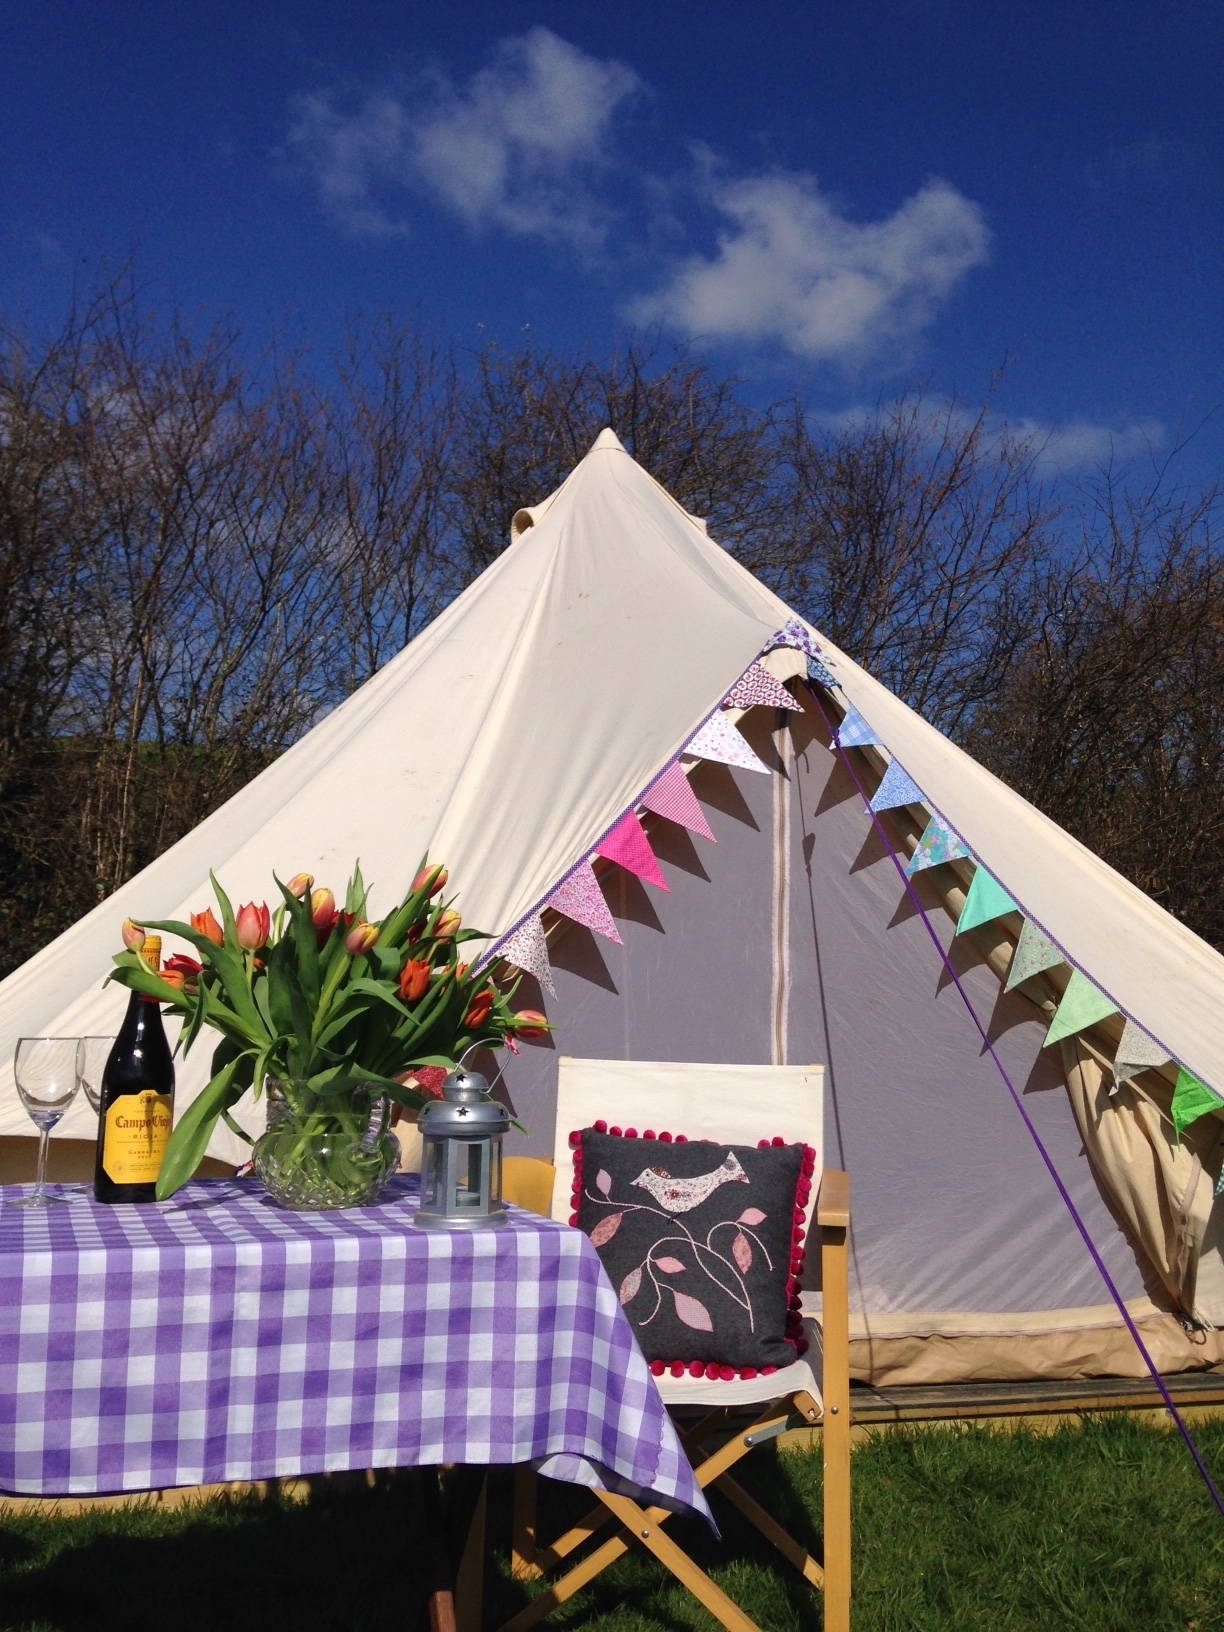 Bell Tent - The perfect mix of camping and comfort, ready pitched with all the essentials. We have one bell tent and we are taking bookings. The bell tent is ready pitched, complete with bedding, chairs, table, etc. Please ring or email for further information. To book the bell tent you can email tinhayretreats@gmail.com or phone 01566 784990.